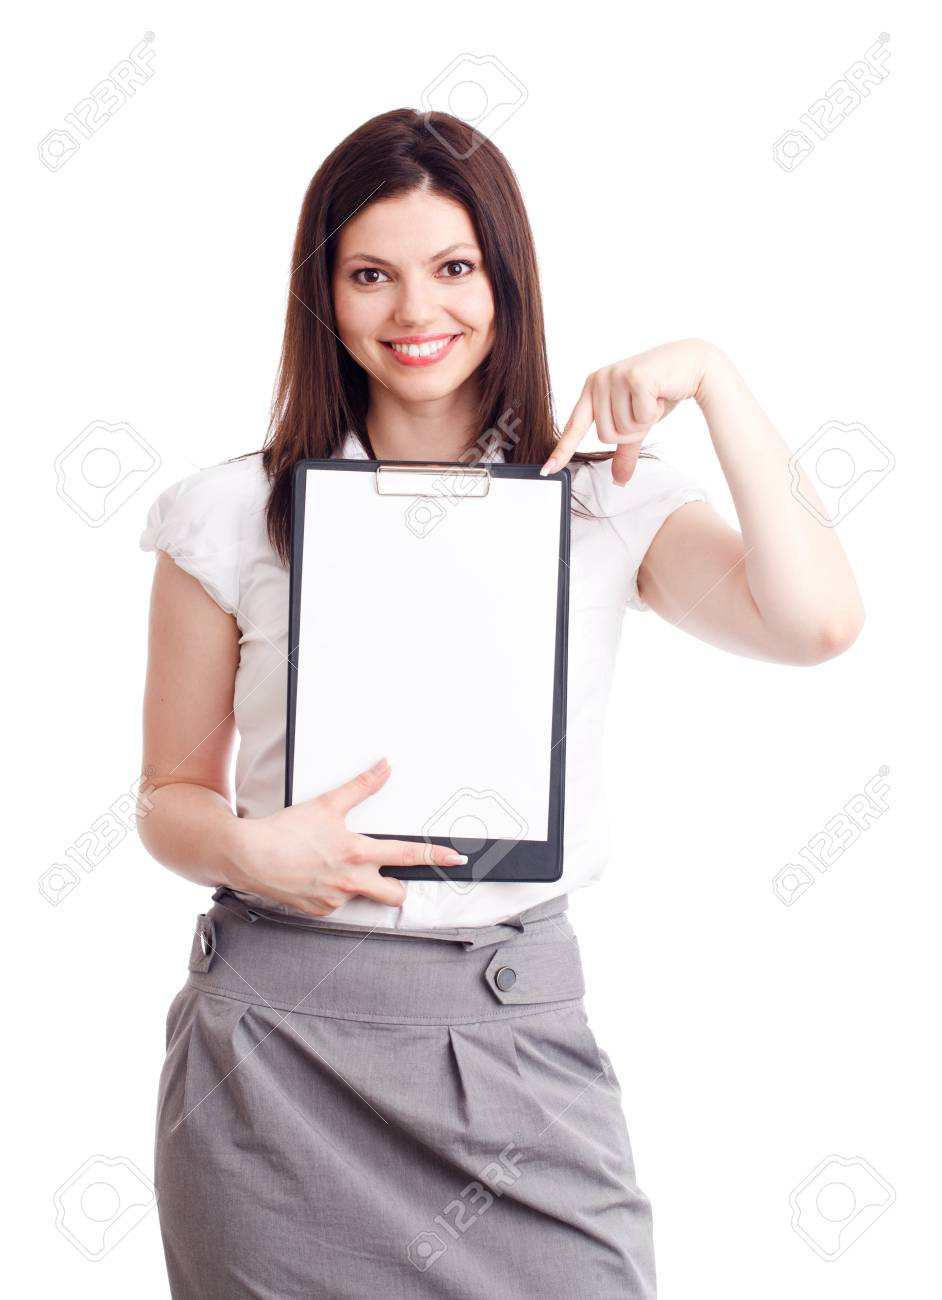 Young businesswoman showing contract. Isolated over white. Stock Photo - 9754301